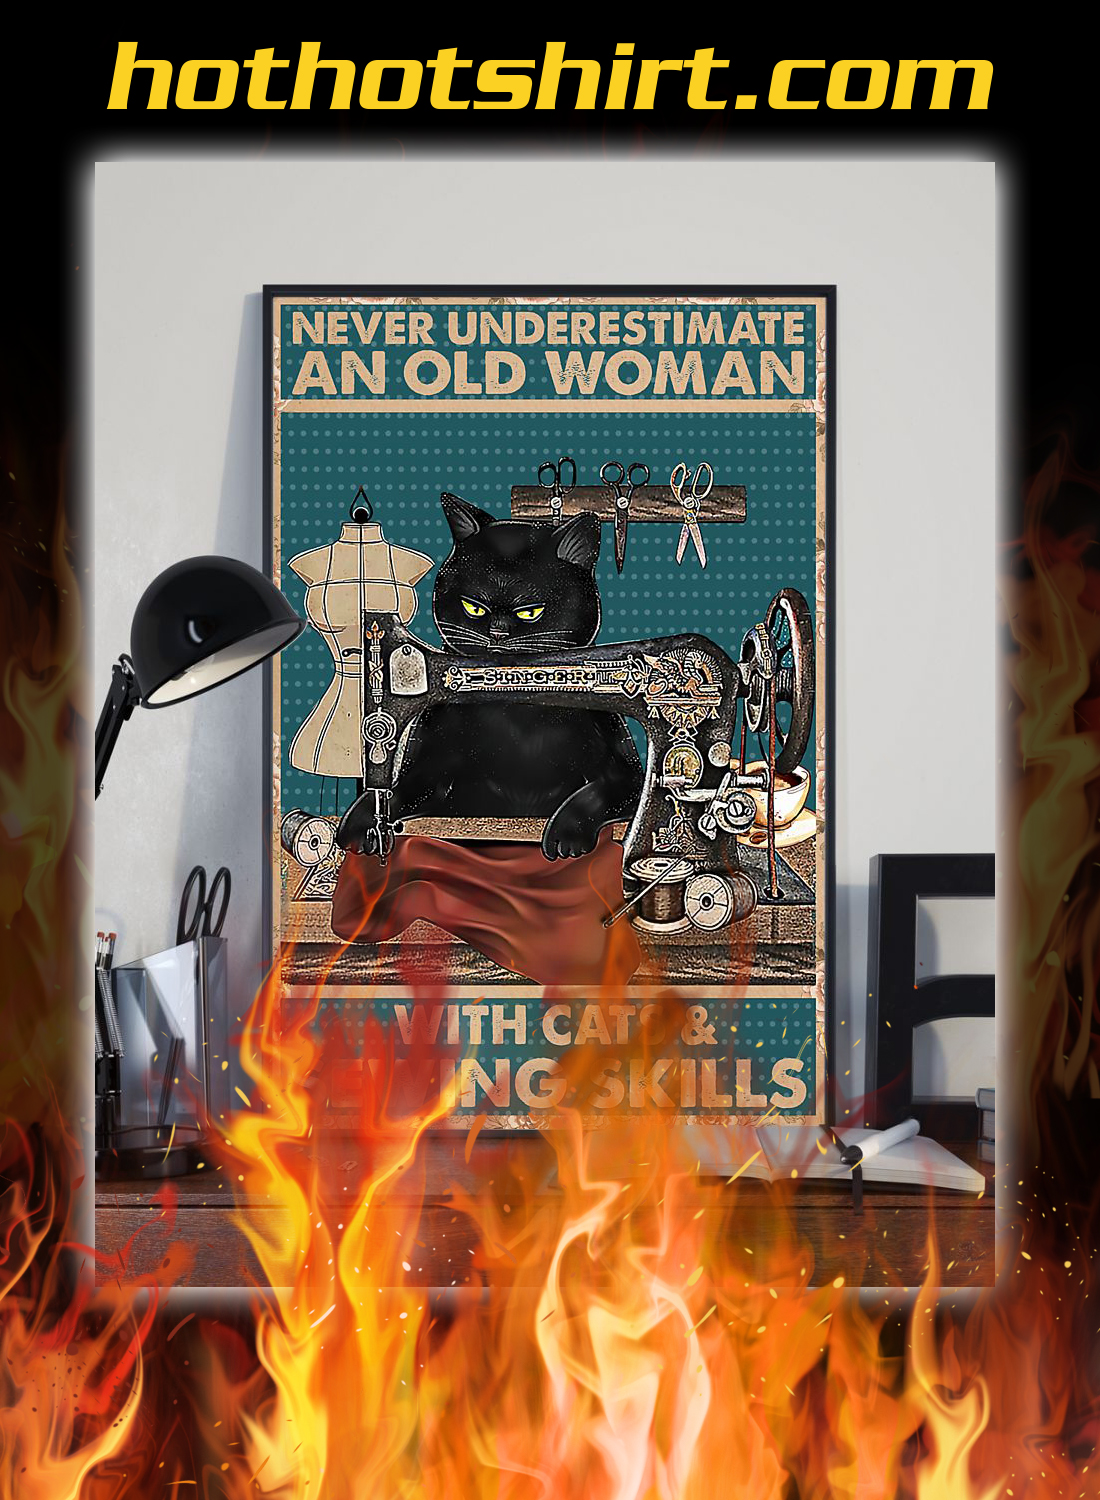 Nerver underestimate an old woman with cats and sewing skills poster 1